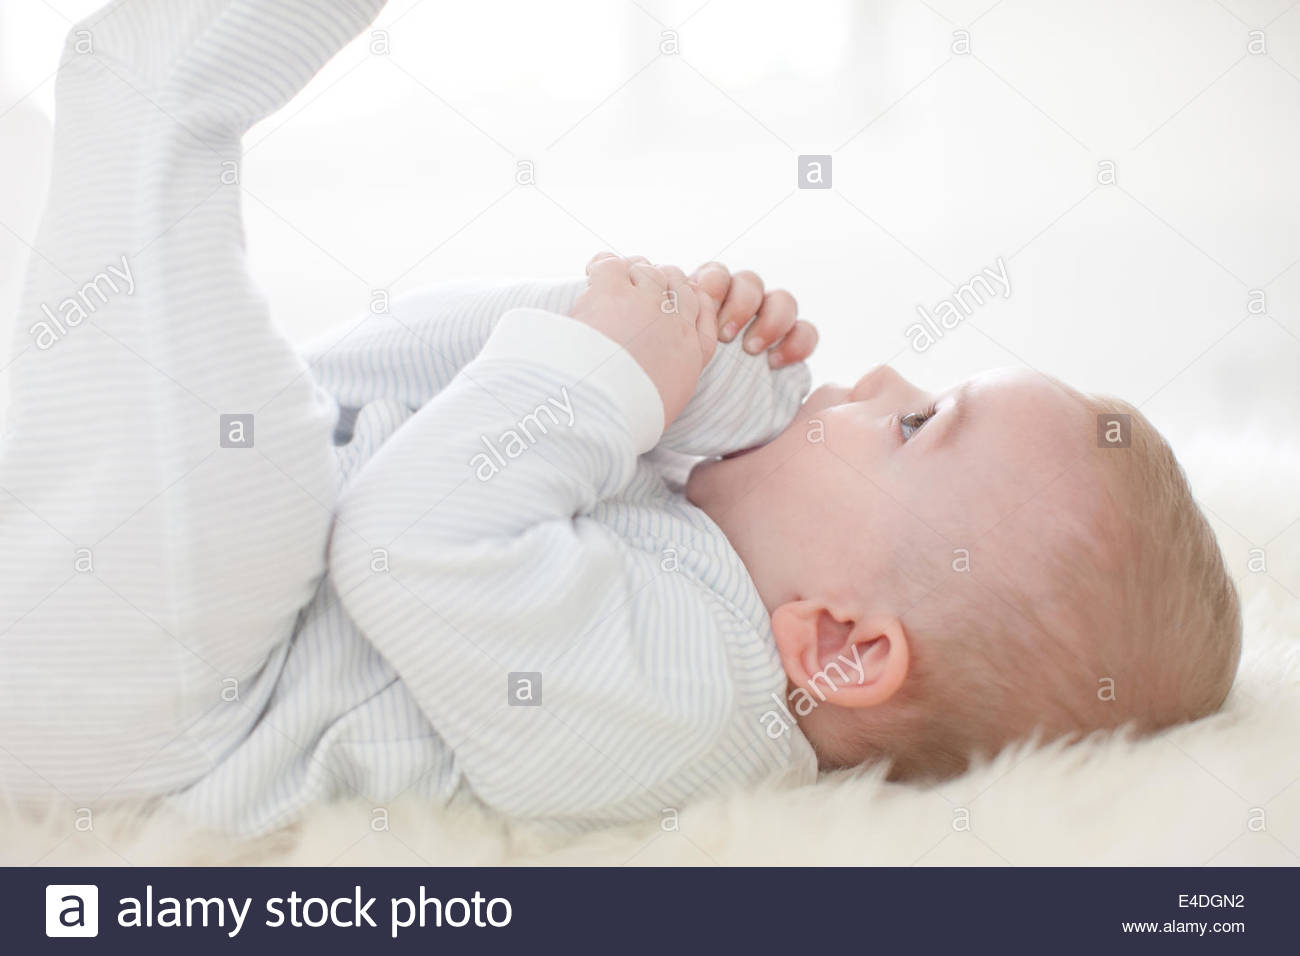 Close up of baby laying on rug - Stock Image